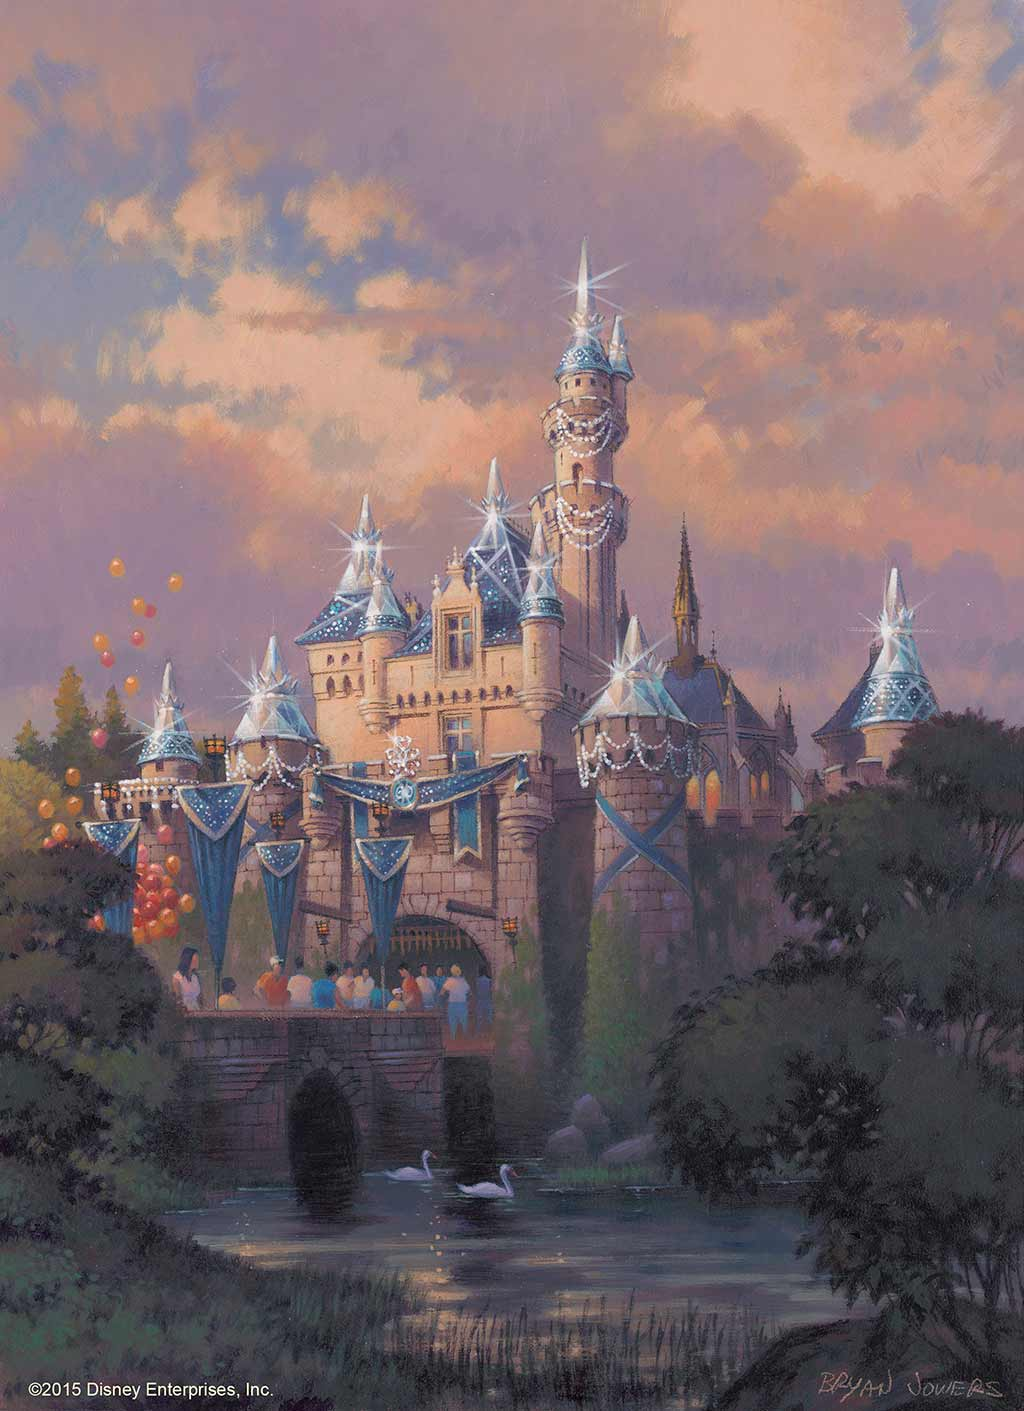 Rendering of Disneyland's Sleeping Beauty Castle